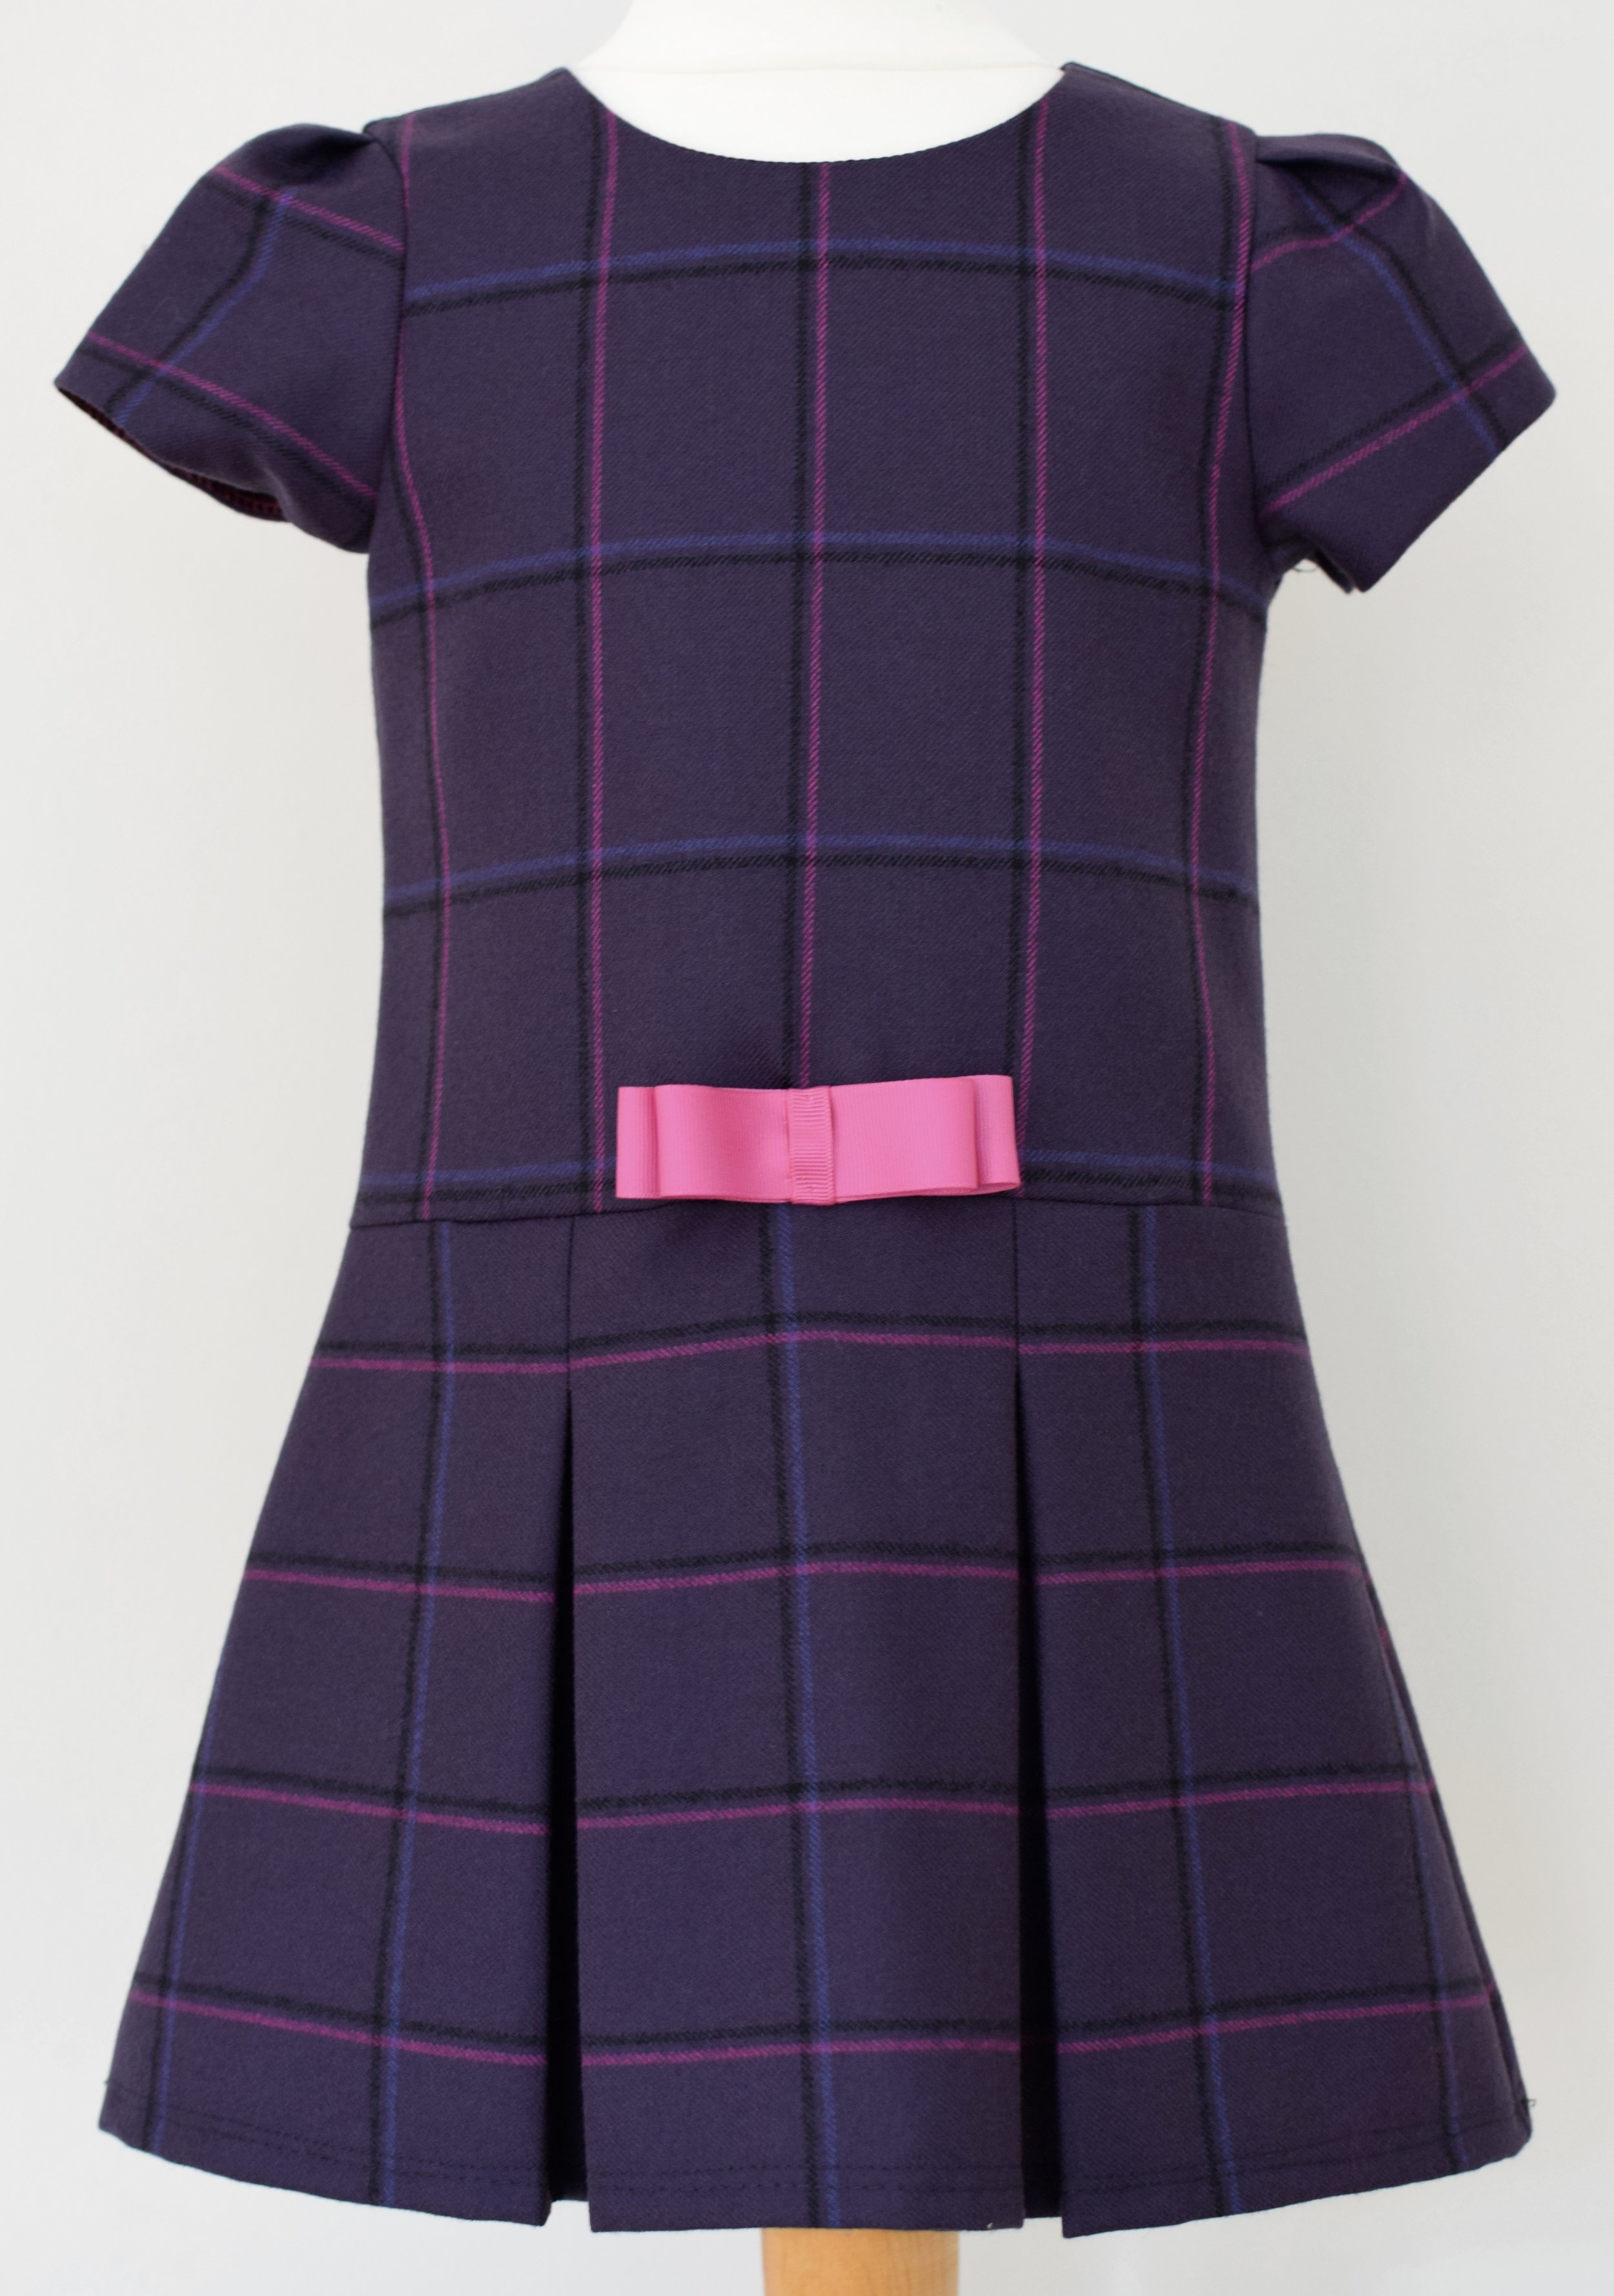 Purple check wool dress    Description: cap sleeve dress made from British designer wool with a low waist,pleated skirt, fixed grosgrain bow, concealed zip at back and fully lined.  Sizes: 3y, 4y (SOLD OUT), 5y (SOLD OUT), 6y and 7y  Price: from £38